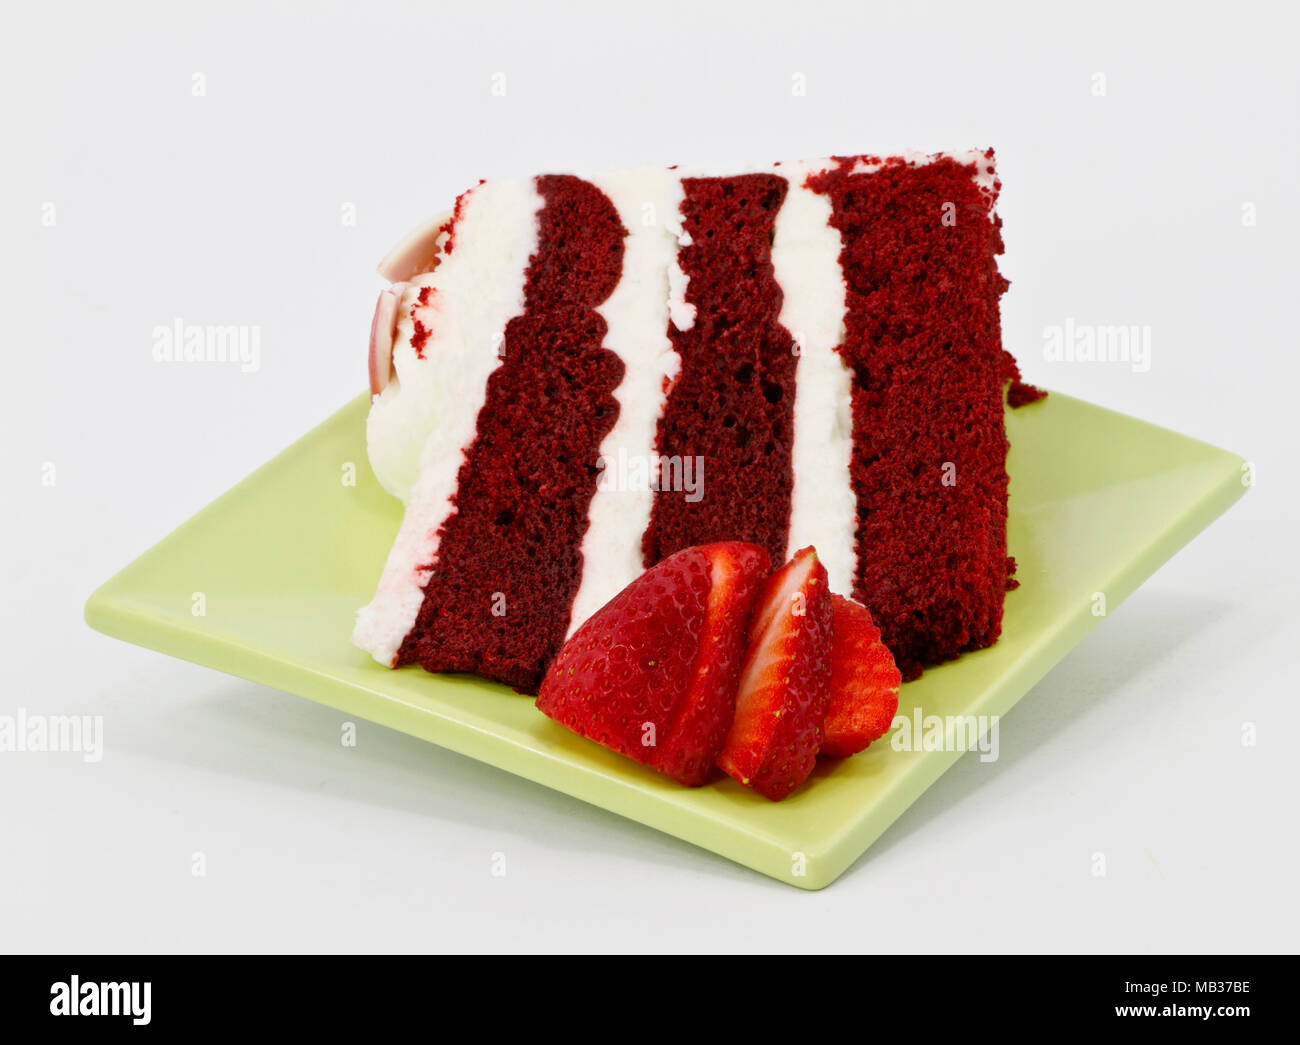 A modern square green dessert plate holds a piece of three layer red velvet cake with thick frosting garnished with sliced strawberries on white back  sc 1 st  Alamy & A modern square green dessert plate holds a piece of three layer ...